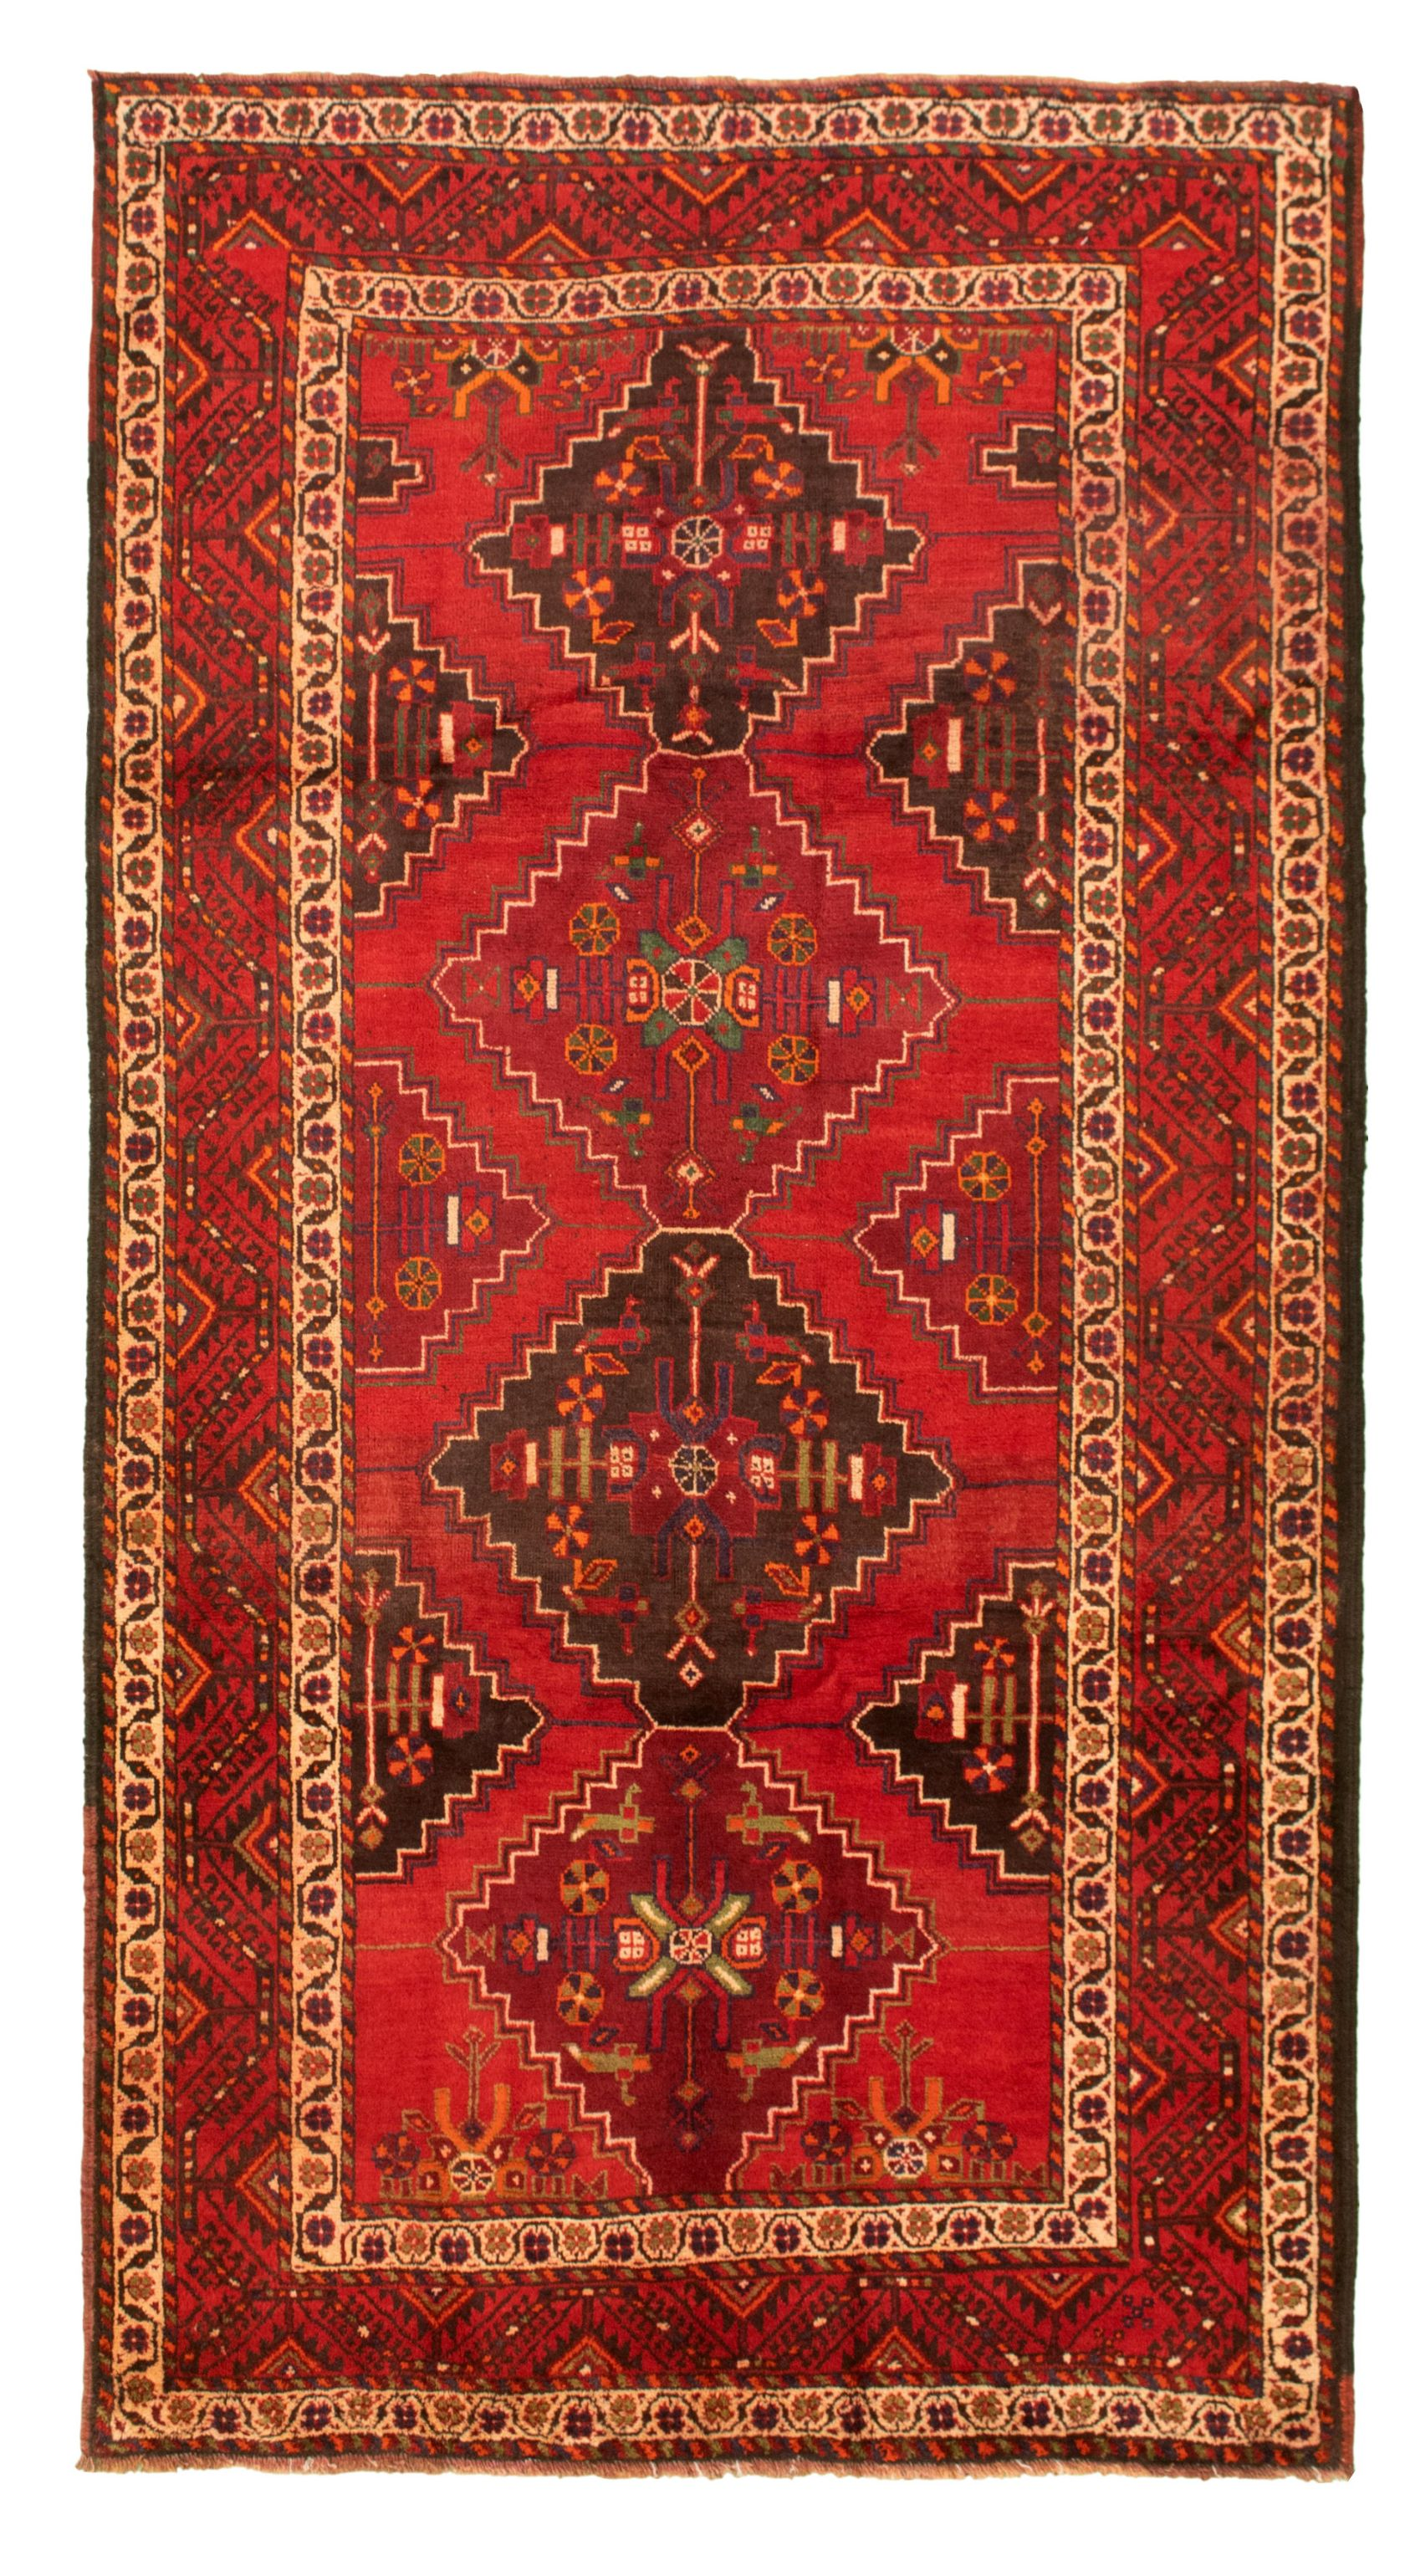 """Hand-knotted Authentic Turkish Red Wool Rug 5'0"""" x 9'9""""  Size: 5'0"""" x 9'9"""""""